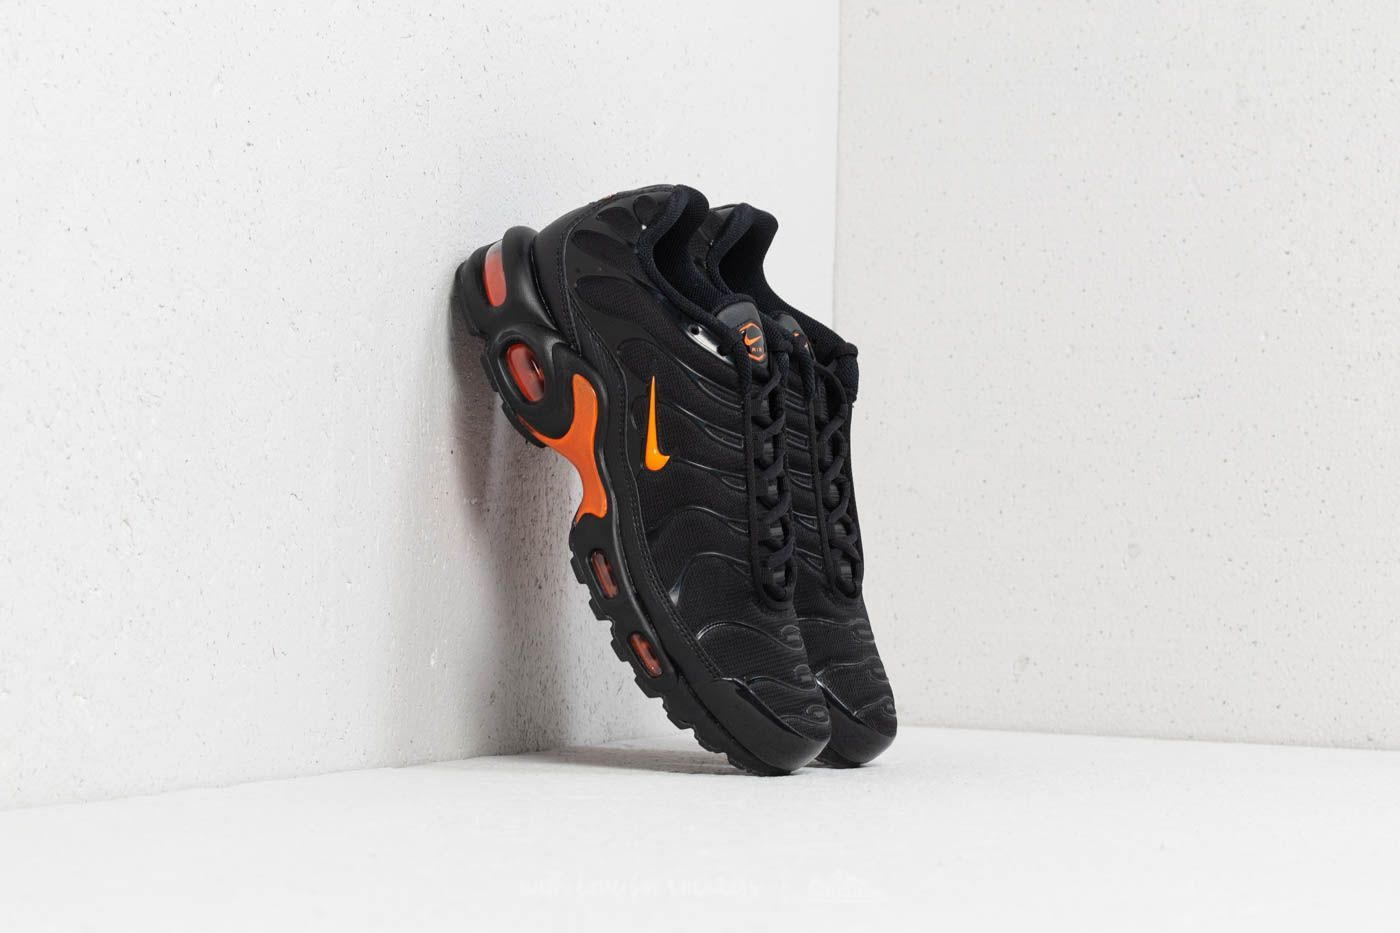 on sale e5acf 0f1b1 Nike Air Max Plus TN SE Black/ Total Orange | Footshop